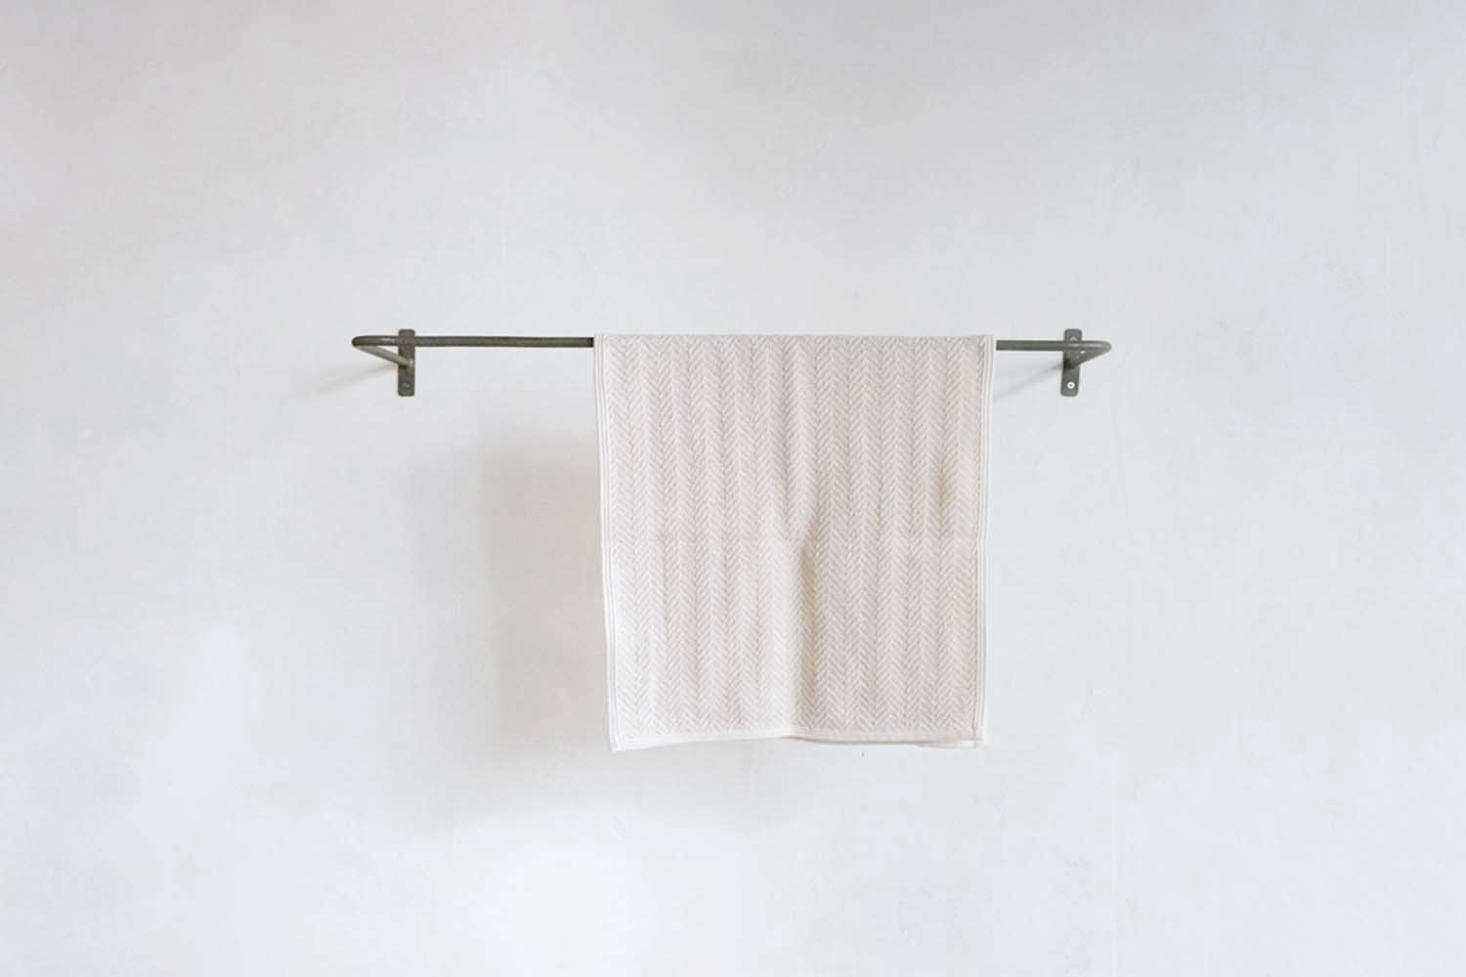 From Japanese store Orné de Feuilles, the natural steel Towel Rail comes in various lengths and depths; 4,0 Yen. For more see our post Multipurpose Black Iron Towel Bars from Japan.